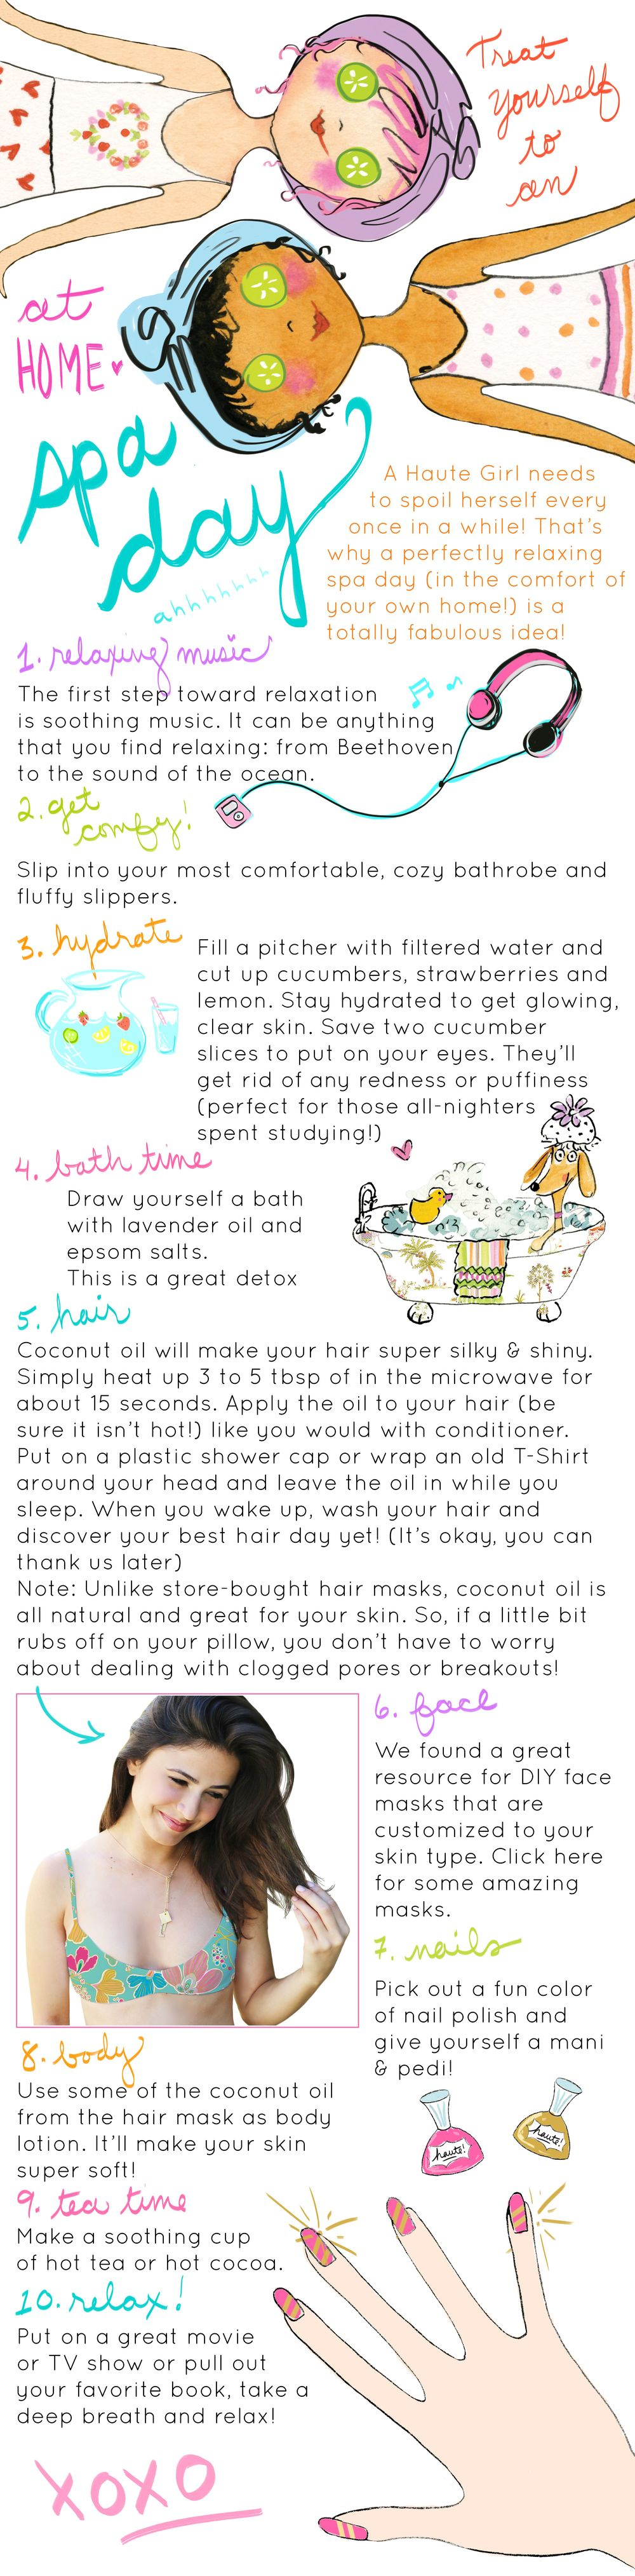 DIY Spa Day